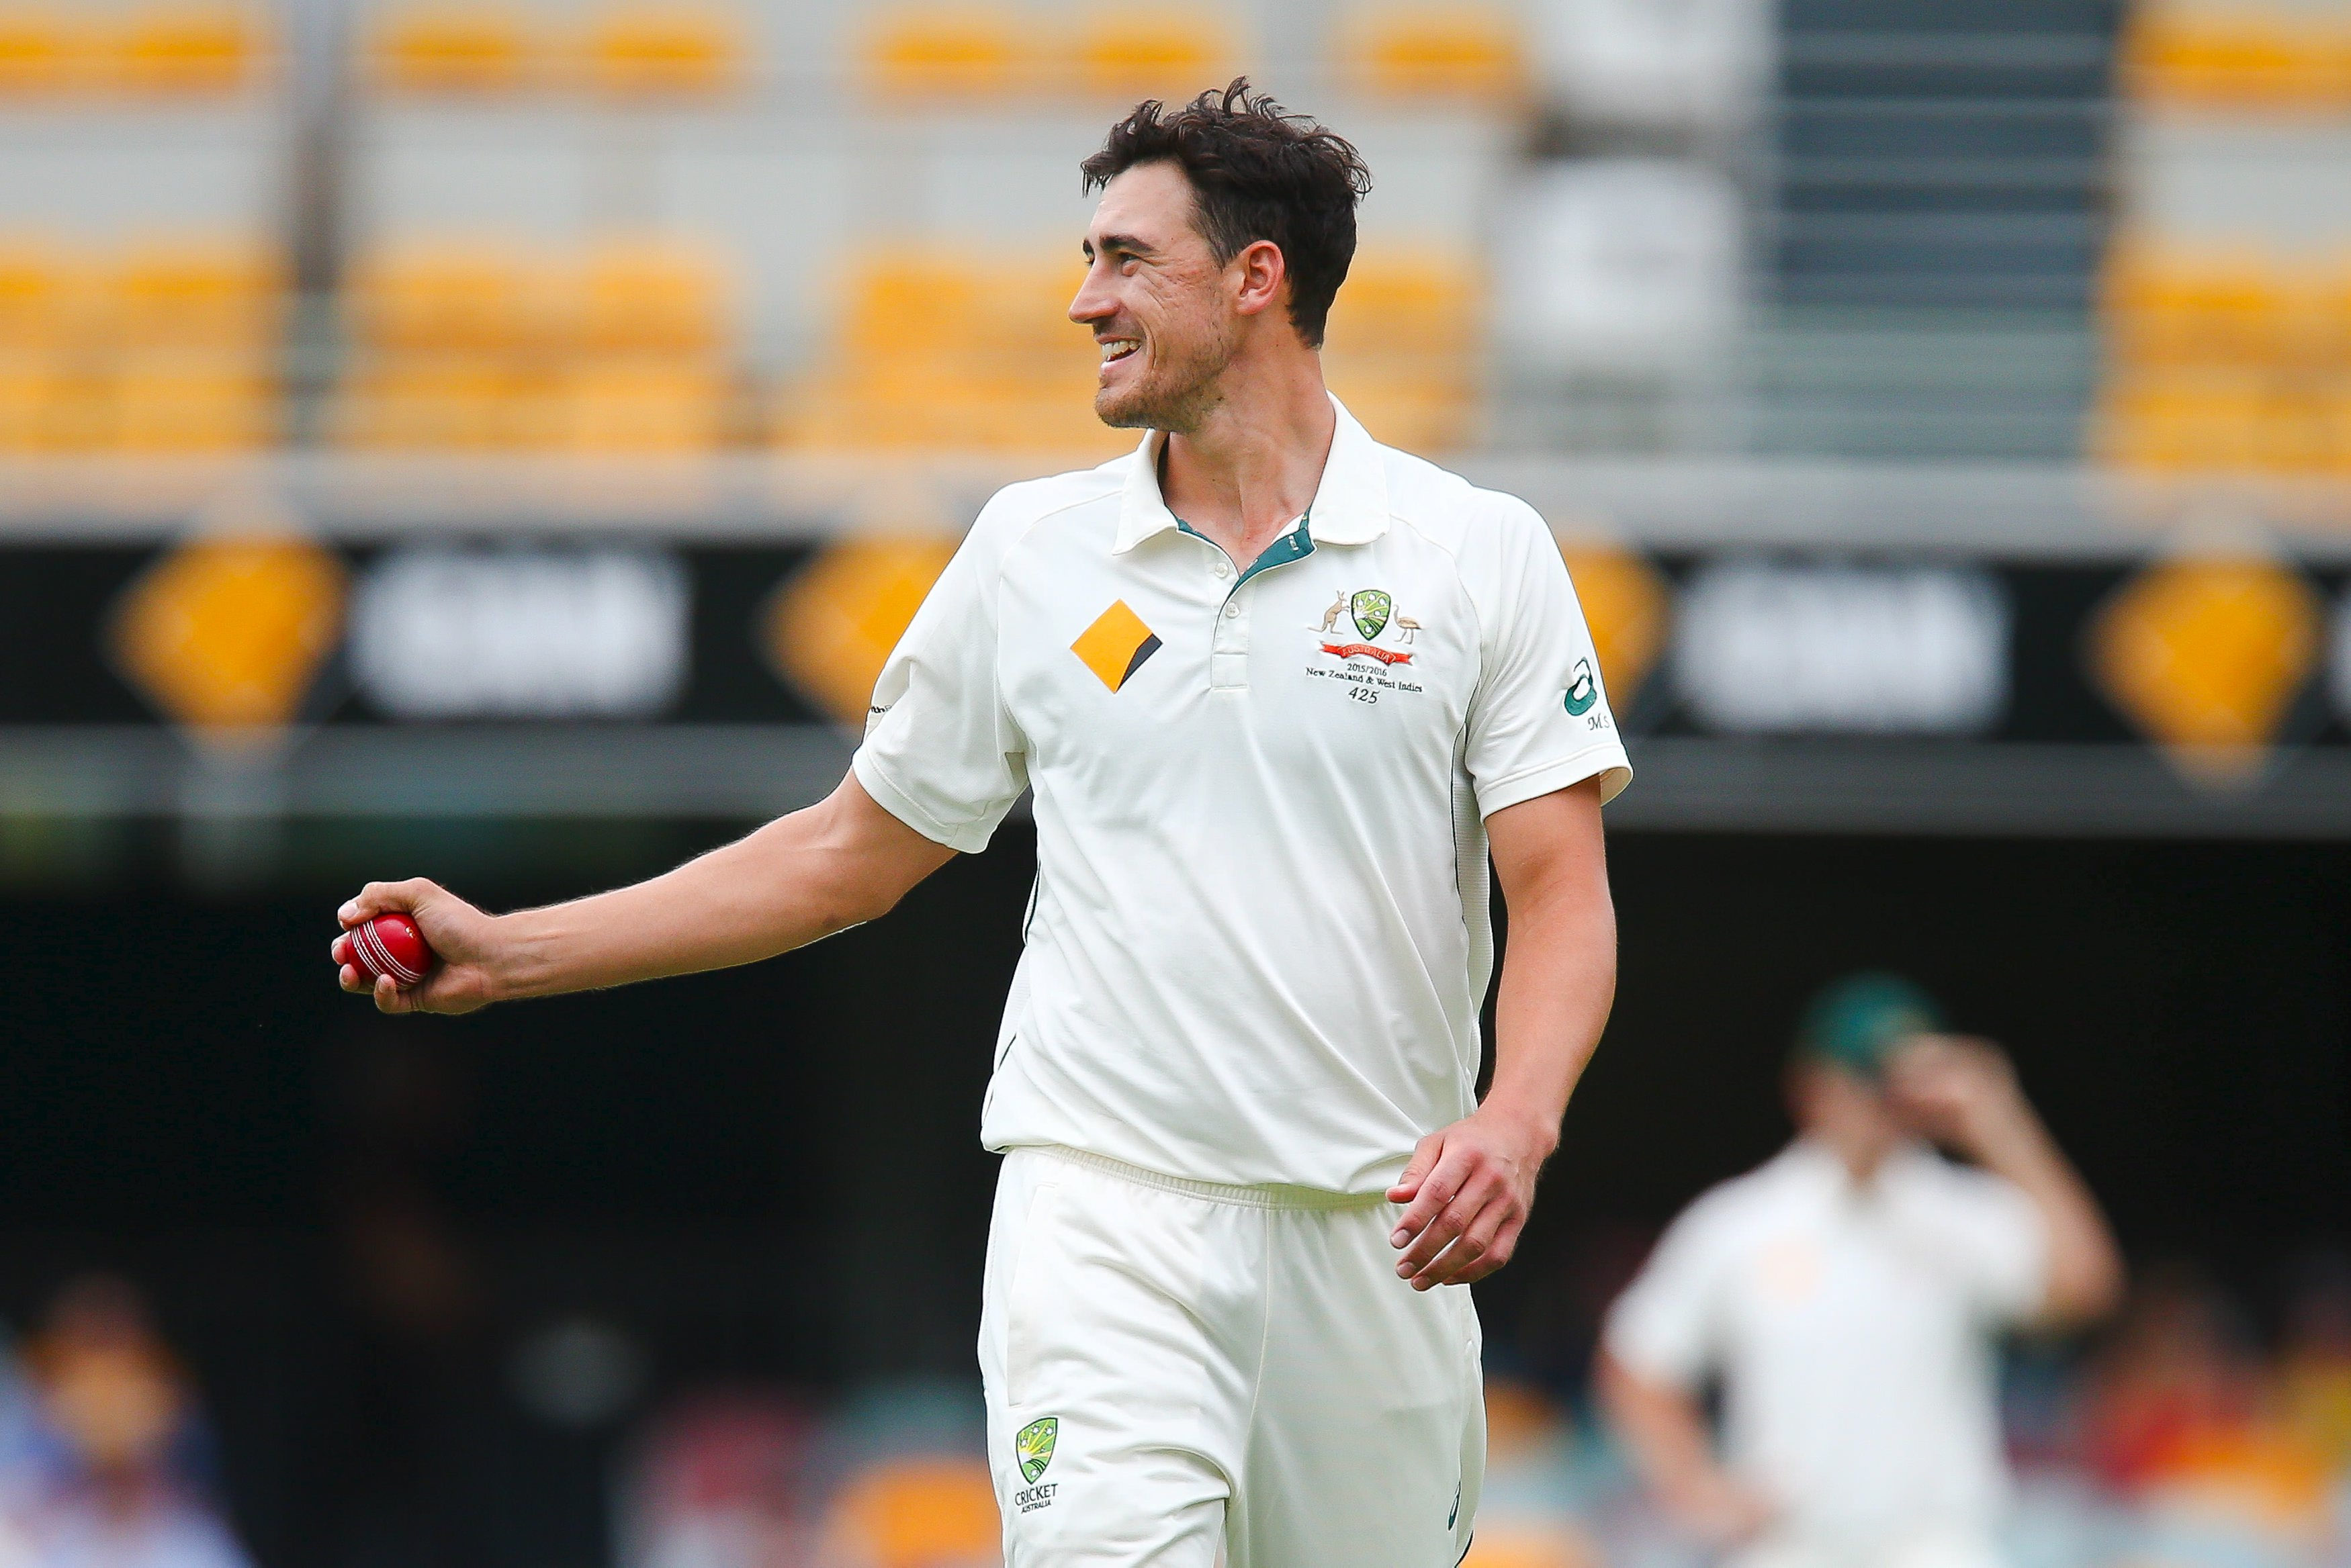 Australian bowler Mitchell Starc walks back to his mark, during the first cricket test match between Australia and New Zealand in Brisbane November 8, 2015. REUTERS/Patrick Hamilton